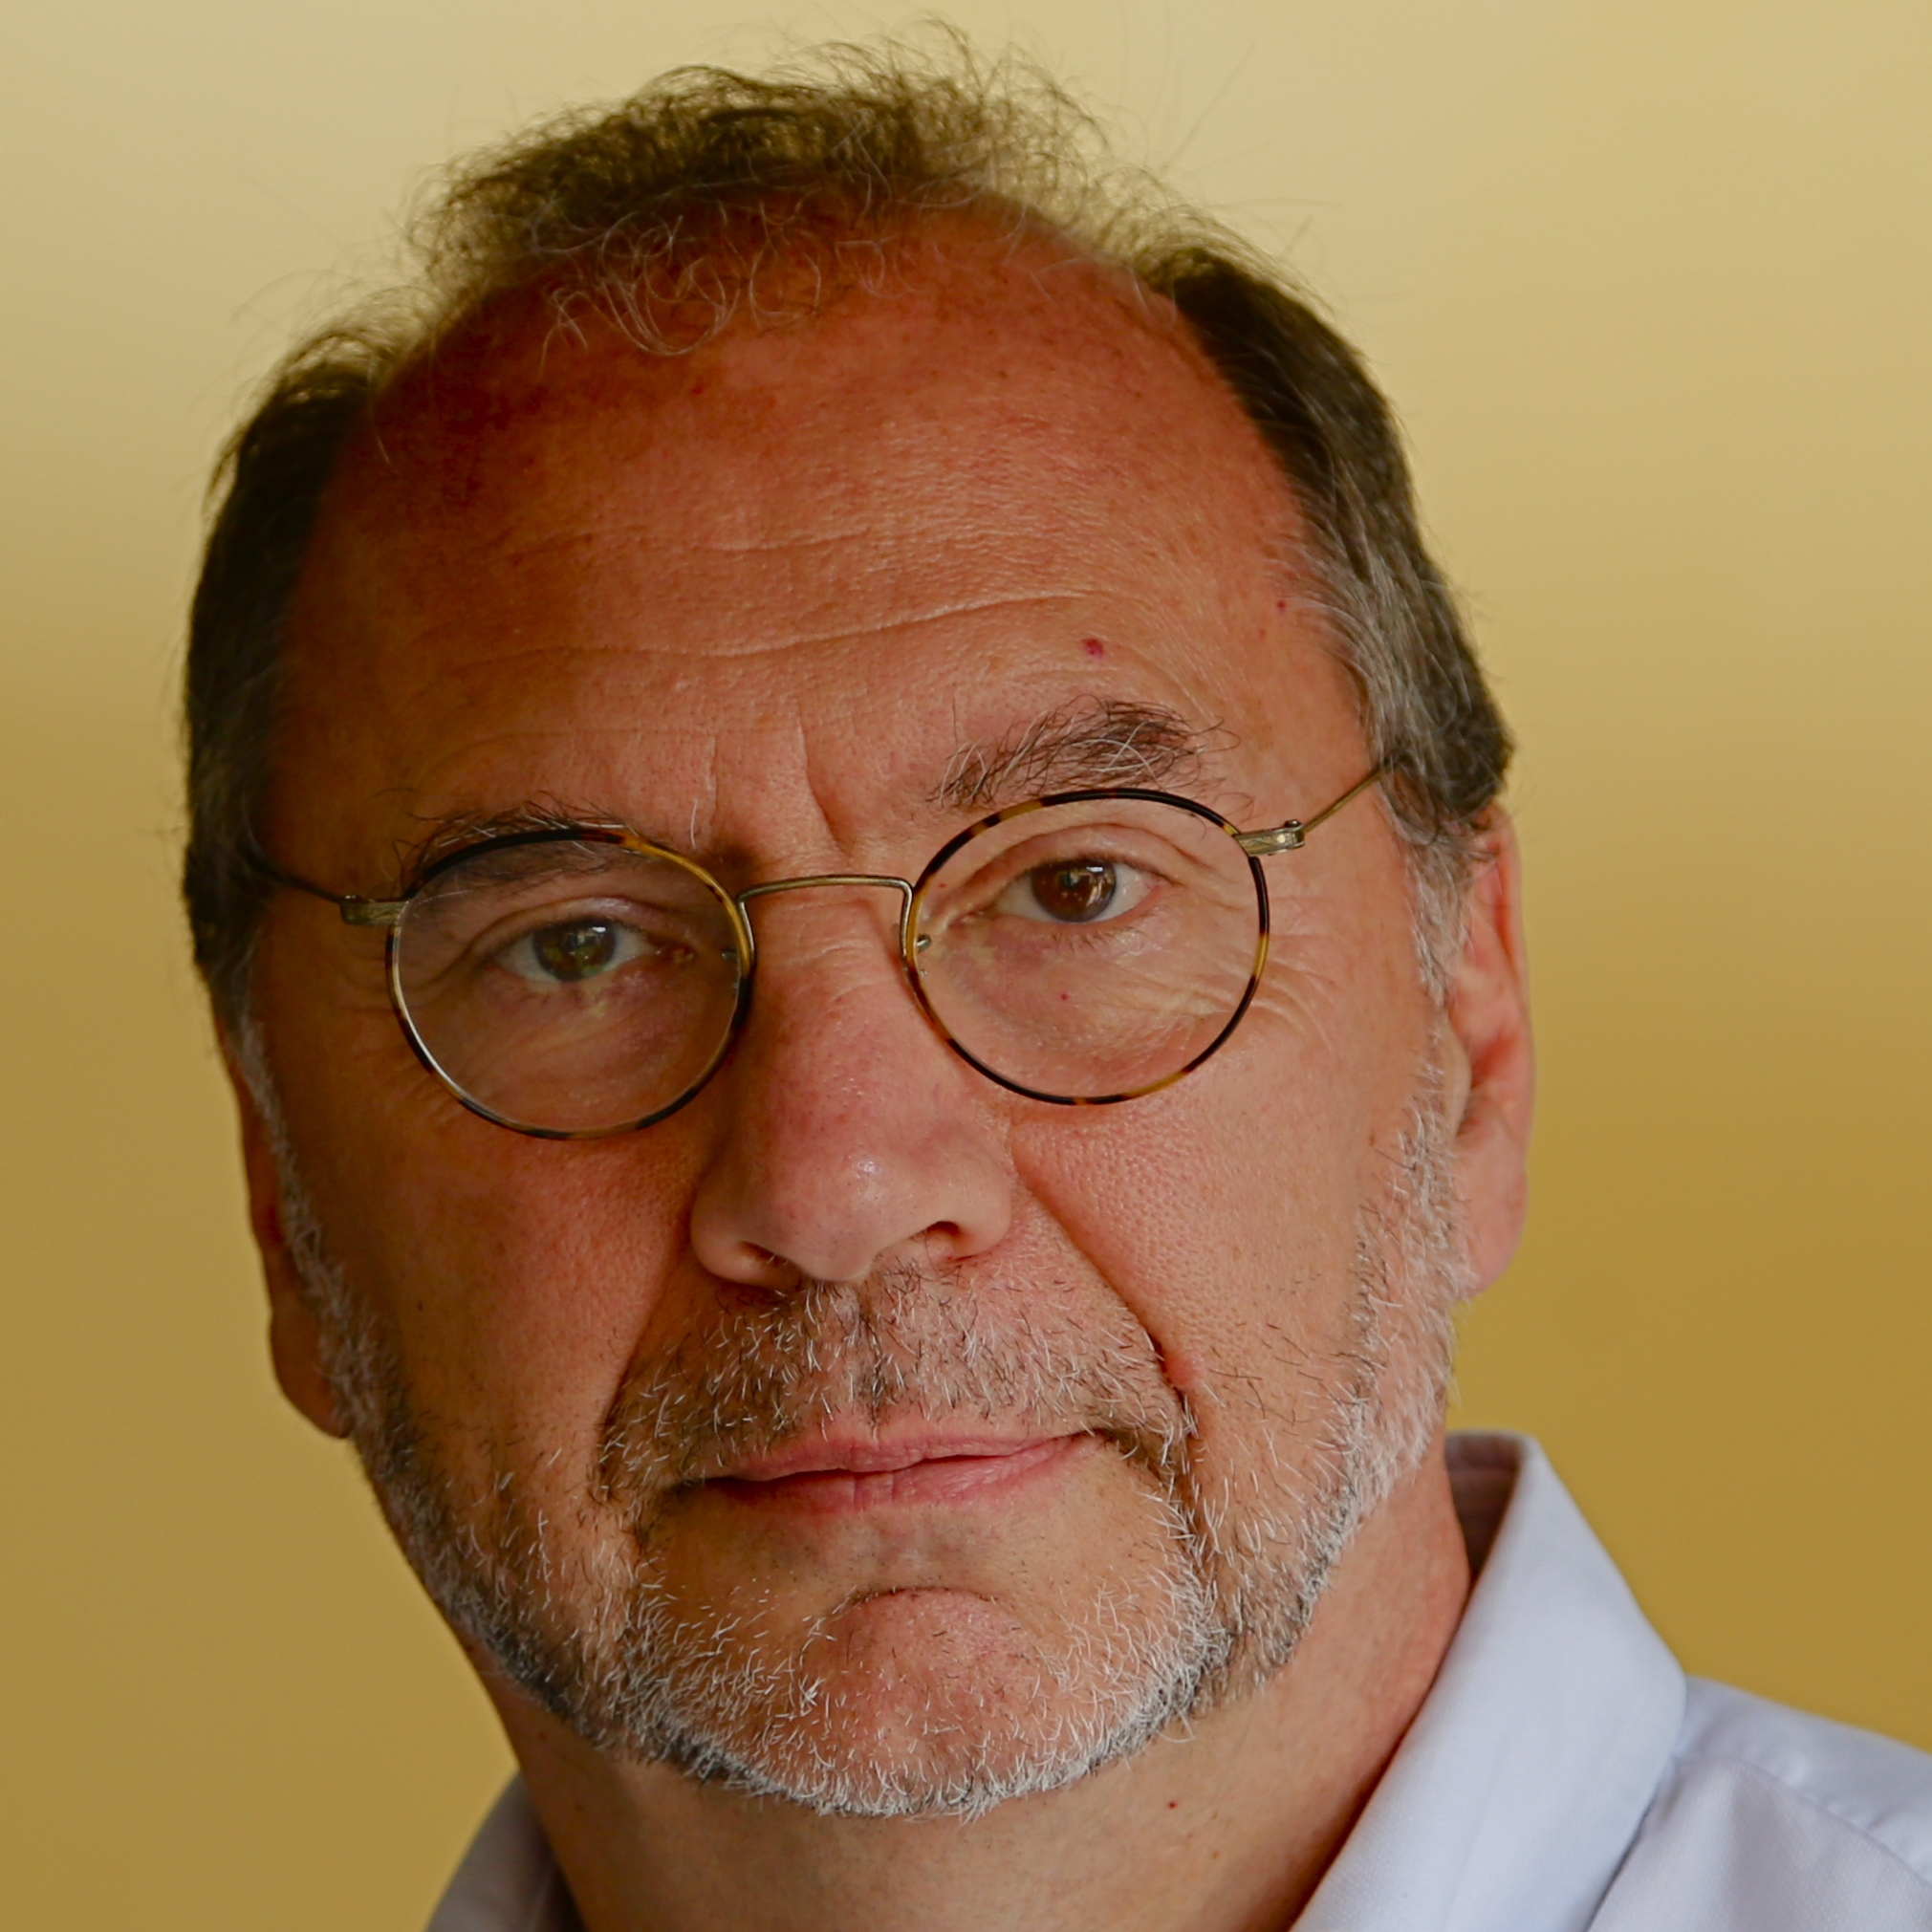 Peter Piot - Director of the London School of Hygiene & Tropical Medicine and Handa Professor of Global Health